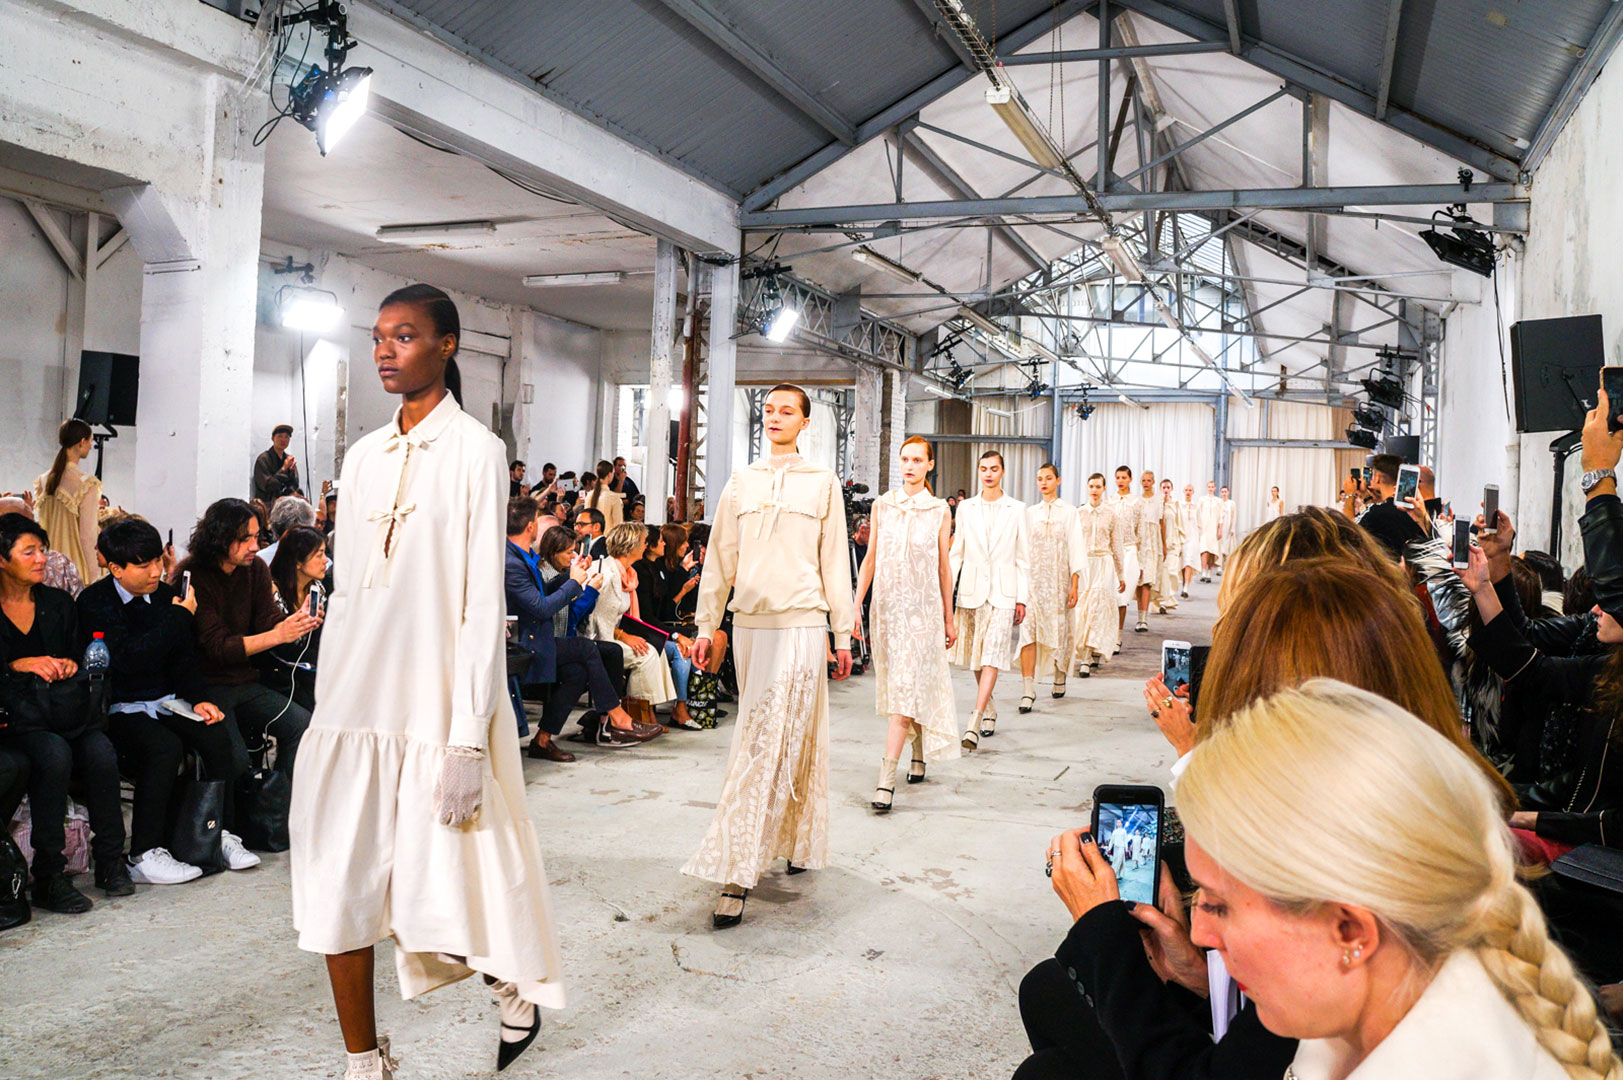 my-paris-fashion-week-diary-paris-by-polina-paraskevopoulou-all-rights-reserved-17